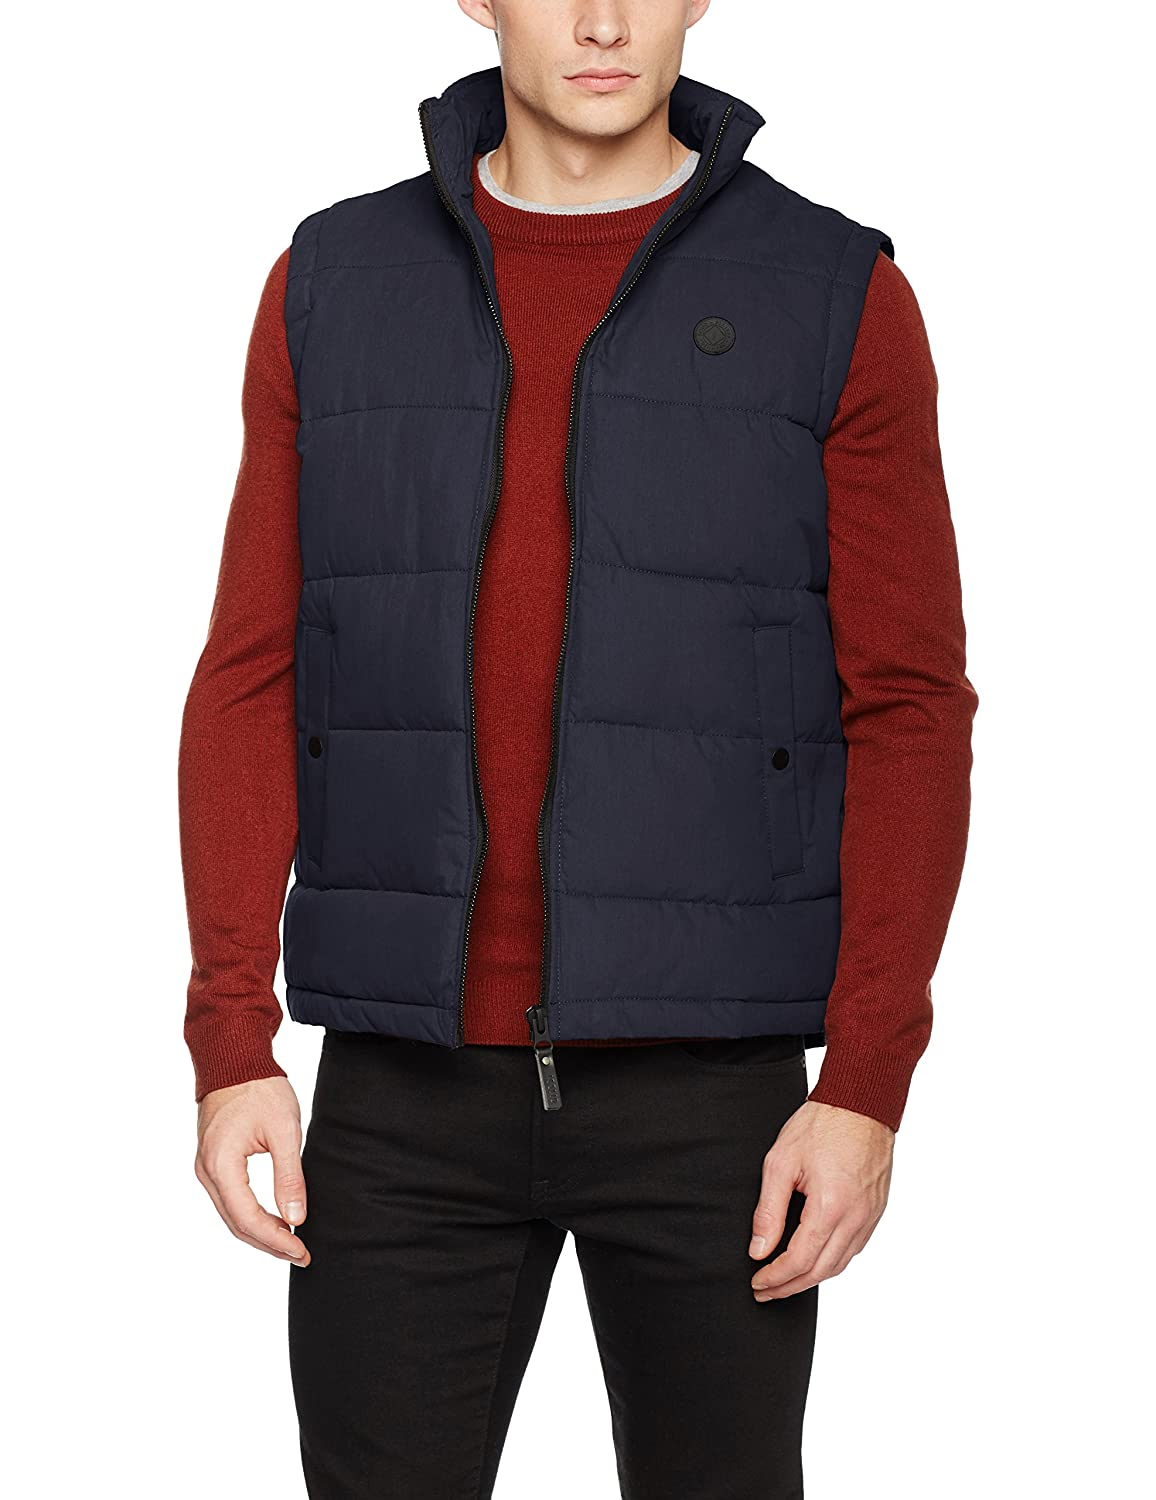 !Solid Herren Outdoor Weste Jacket - Thwang 6179015